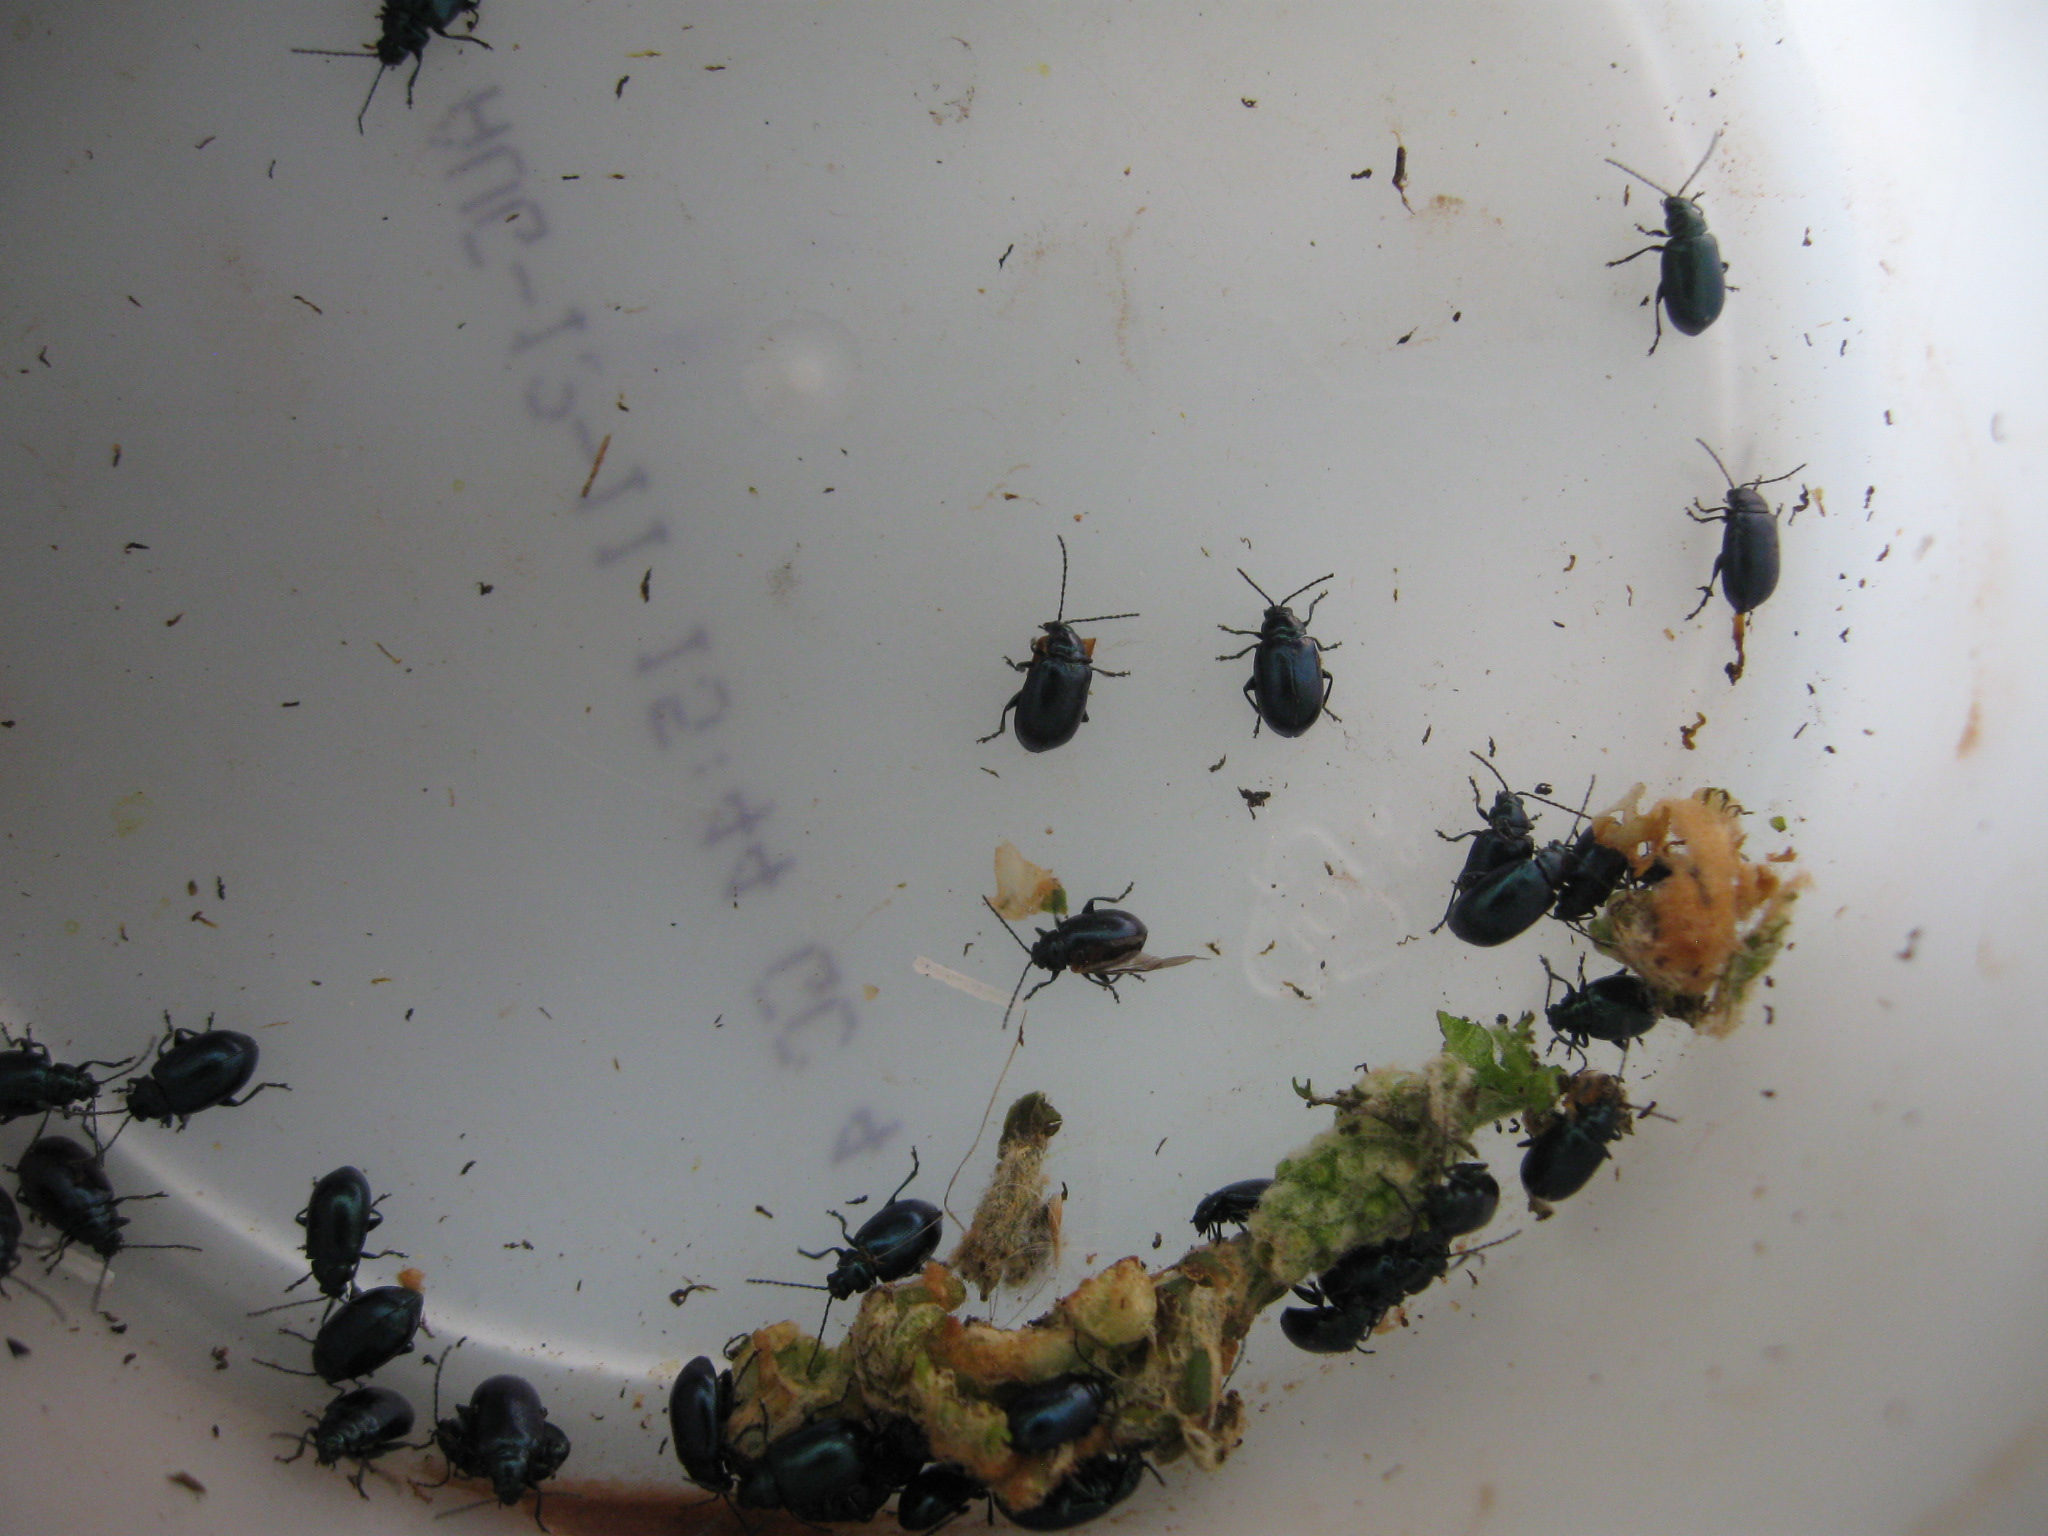 Exciting Beetles Enter Image Description Here Pest Control How Can I Deal Figure Army Beetles Eating My Grapevine Small Black Beetle Bathroom Small Black Beetle Utah houzz-03 Small Black Beetle